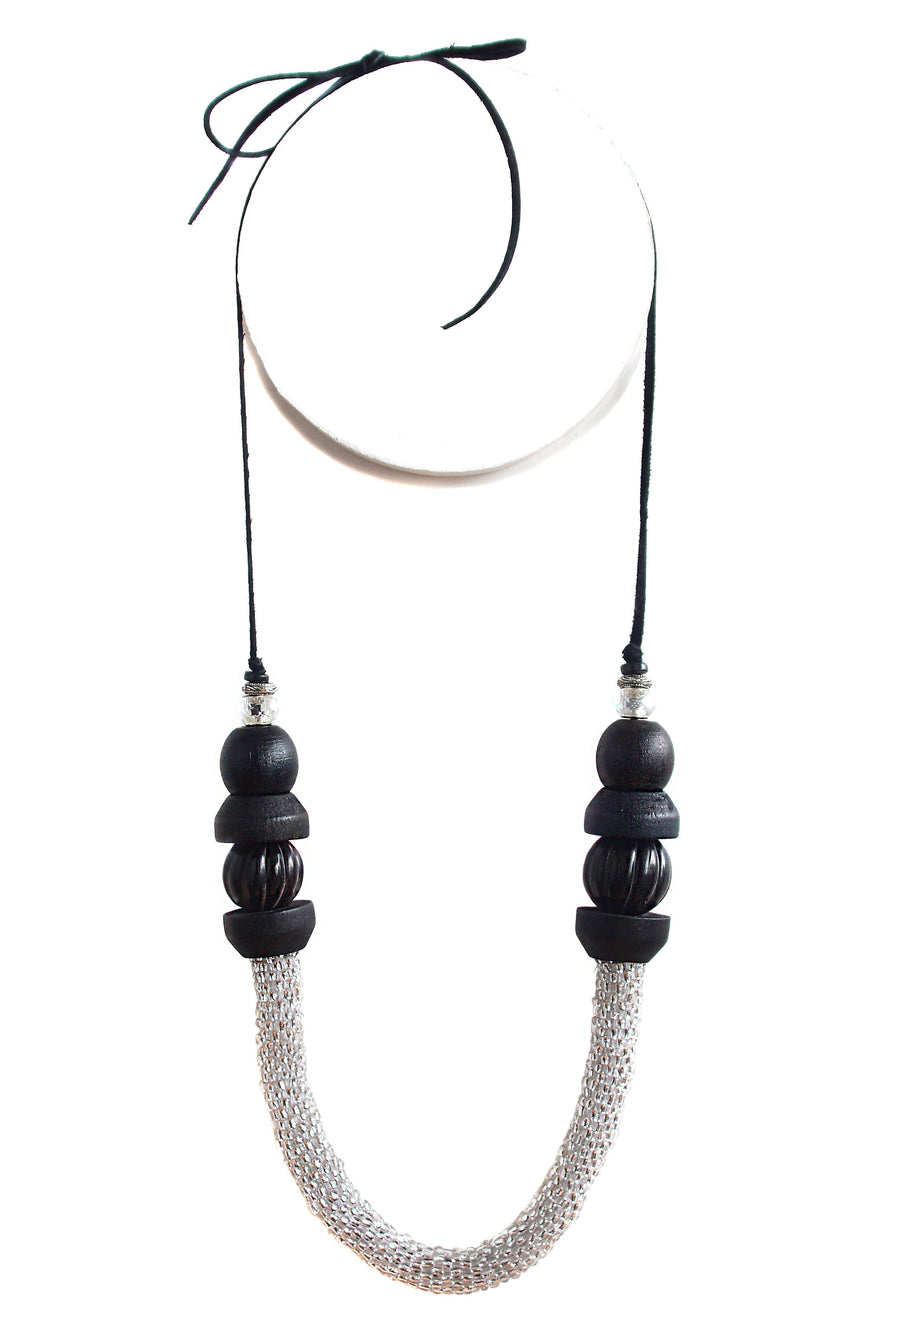 Oksana Tribal Necklace - Asta [LIMITED]